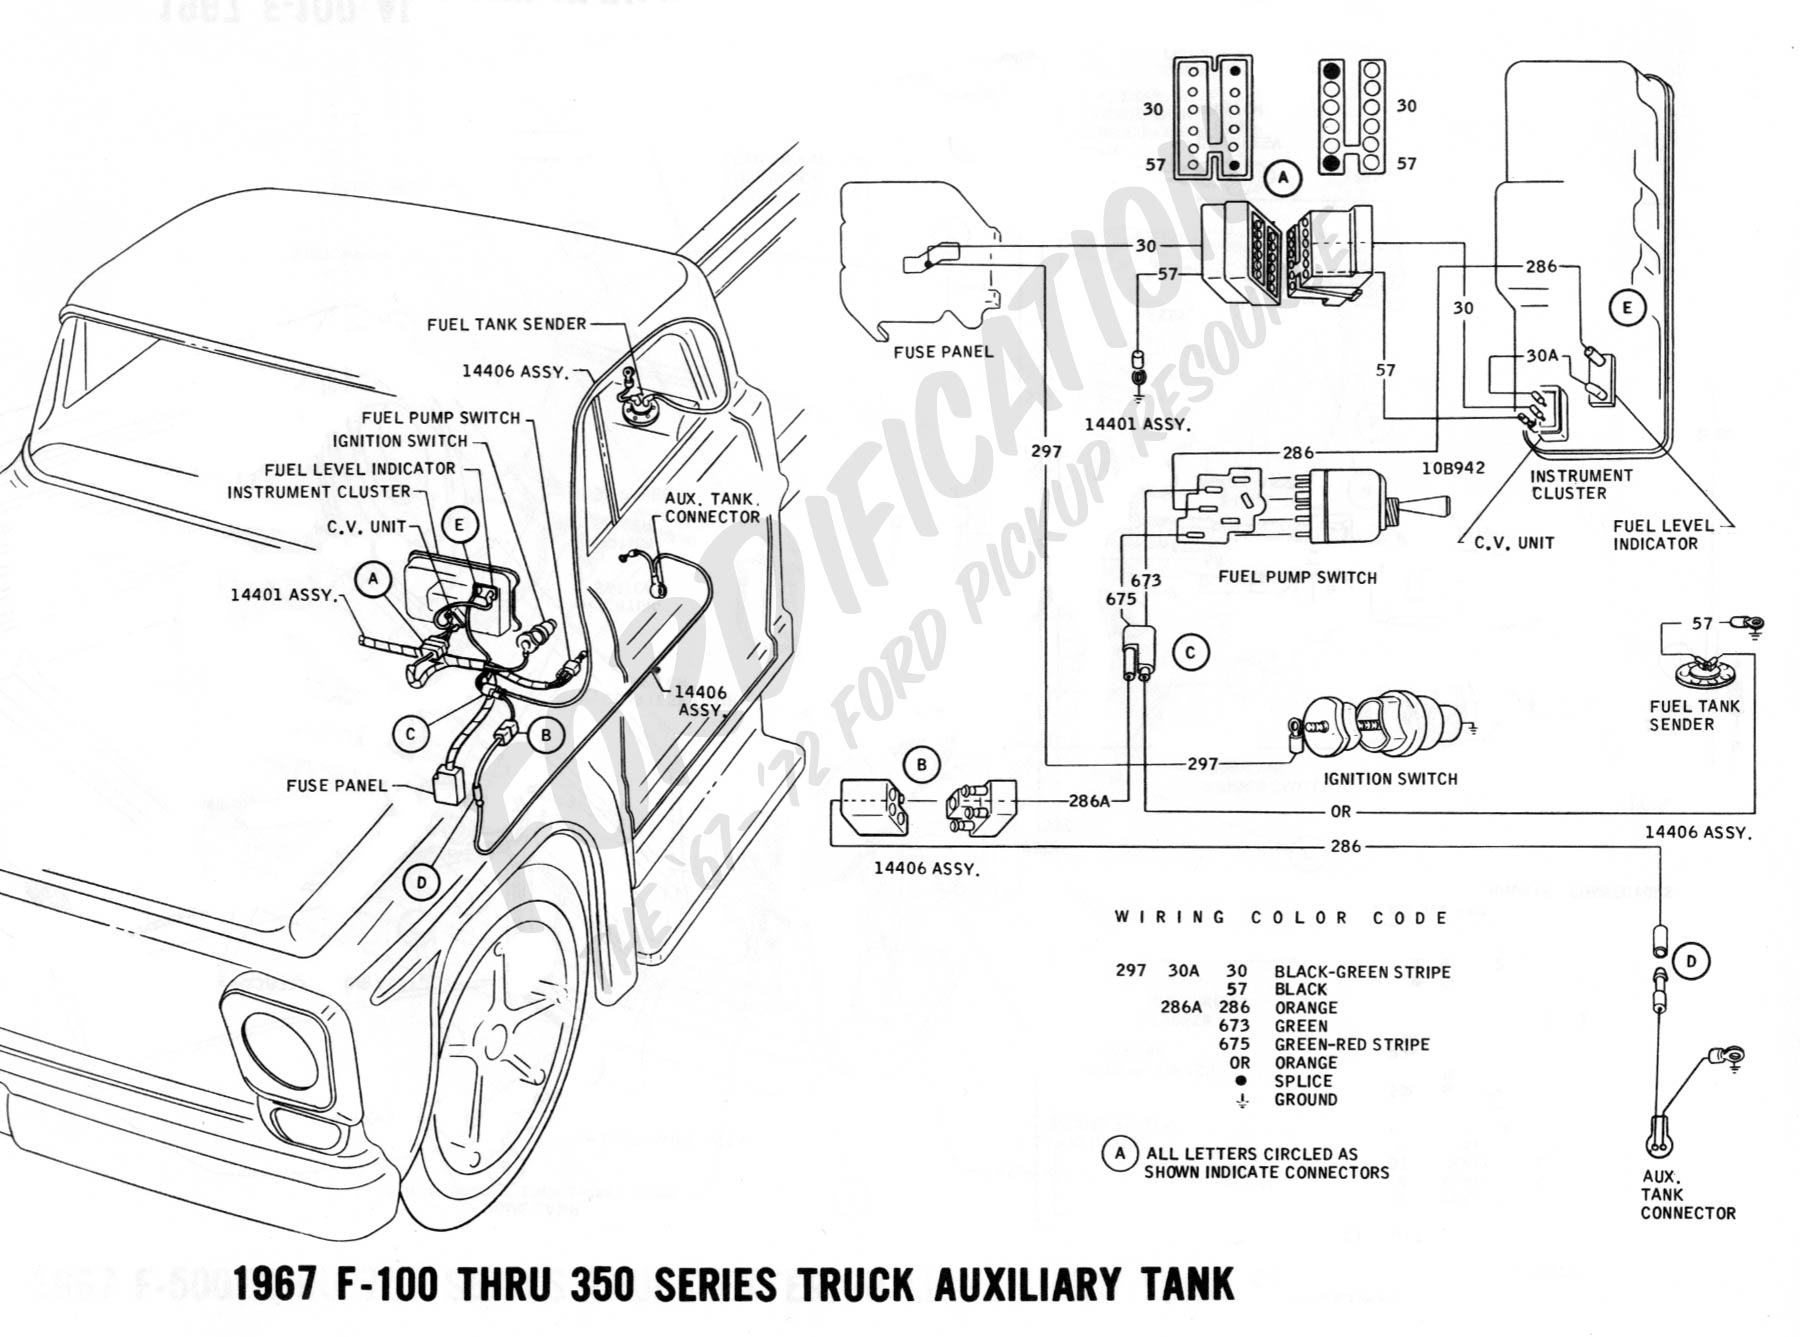 1986 ford f700 brake system diagram